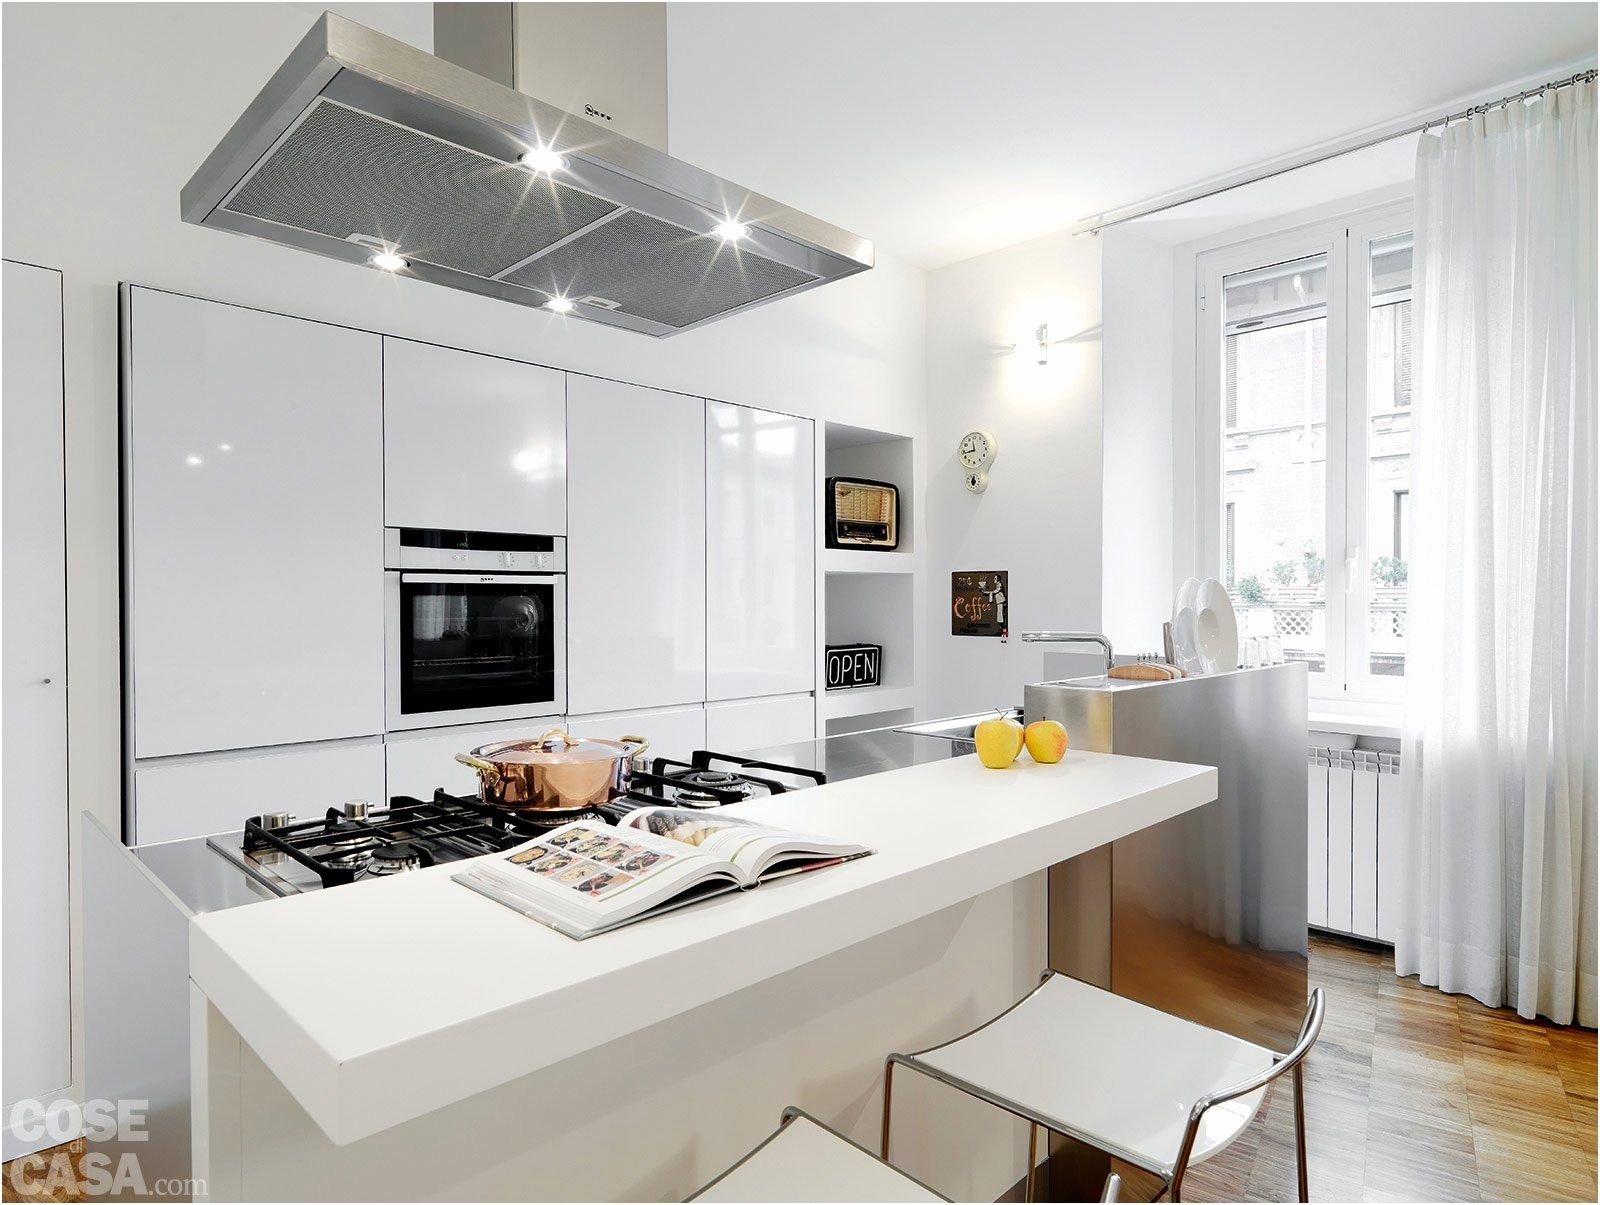 Cucine Moderne Con isola Centrale Inspirational isola Cucina ...